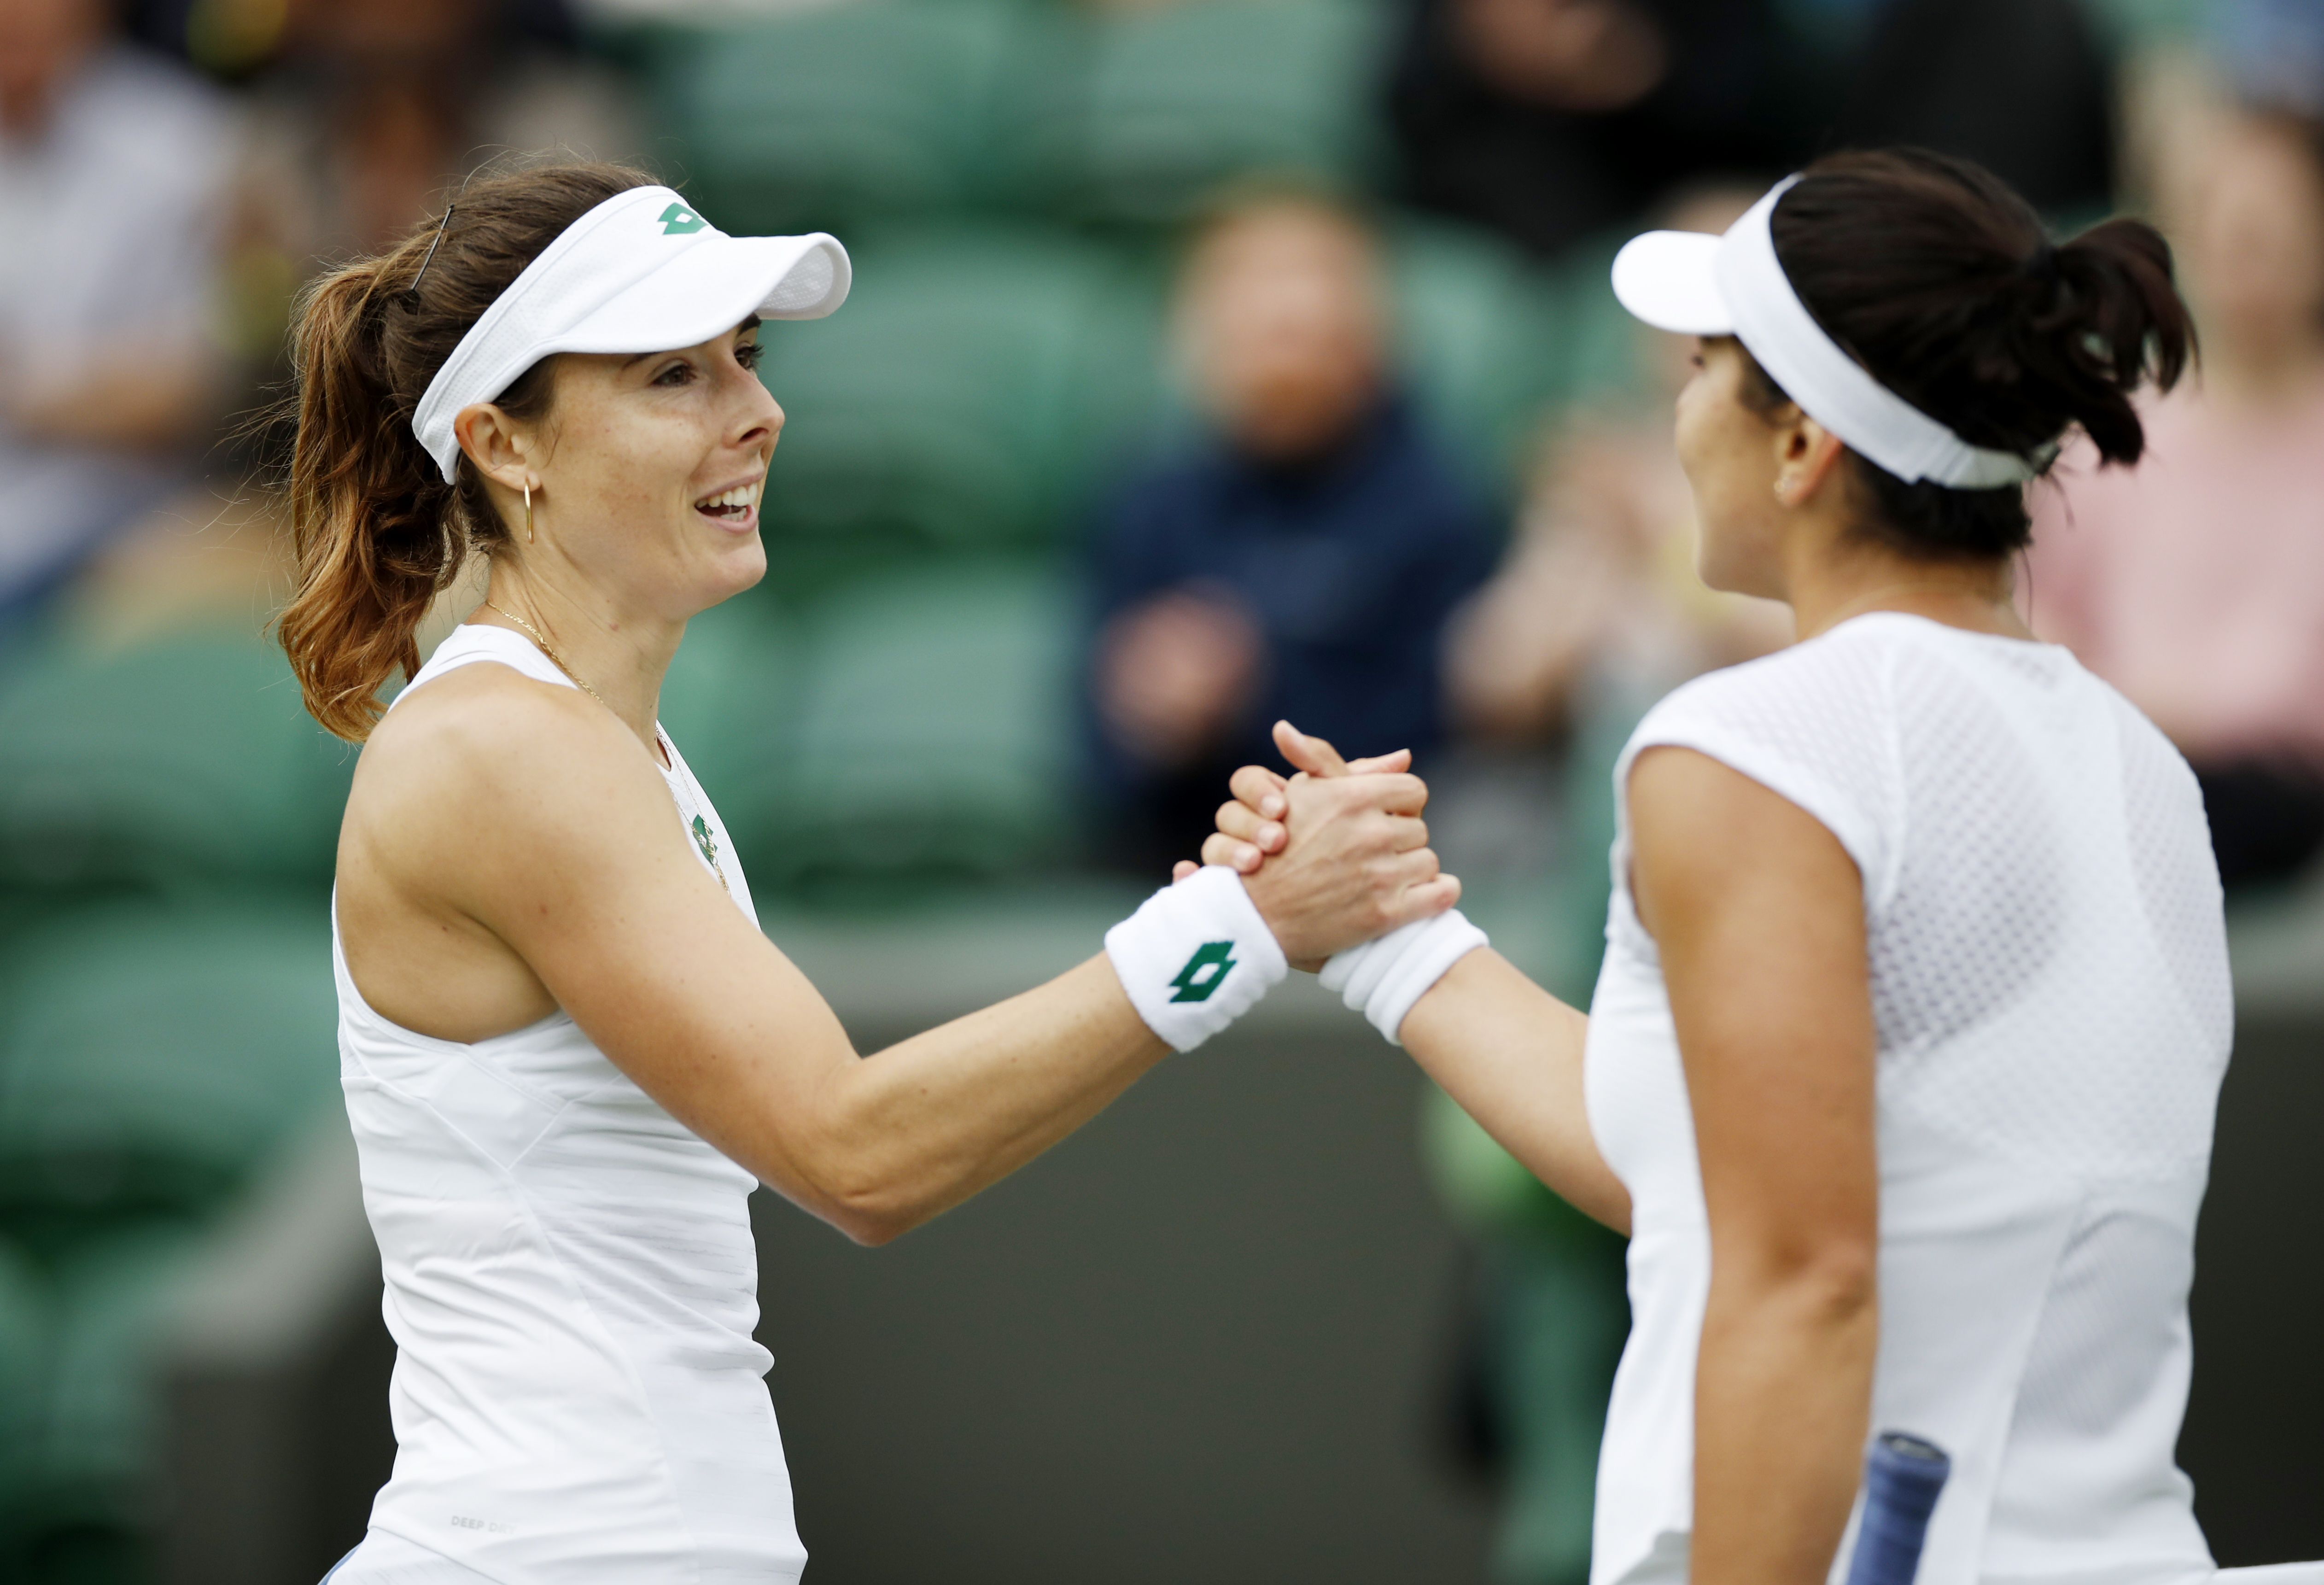 Tennis - Wimbledon - All England Lawn Tennis and Croquet Club, London, Britain - June 30, 2021 France's Alize Cornet shakes hands with Canada's Bianca Andreescu after winning their first round match REUTERS/Paul Childs